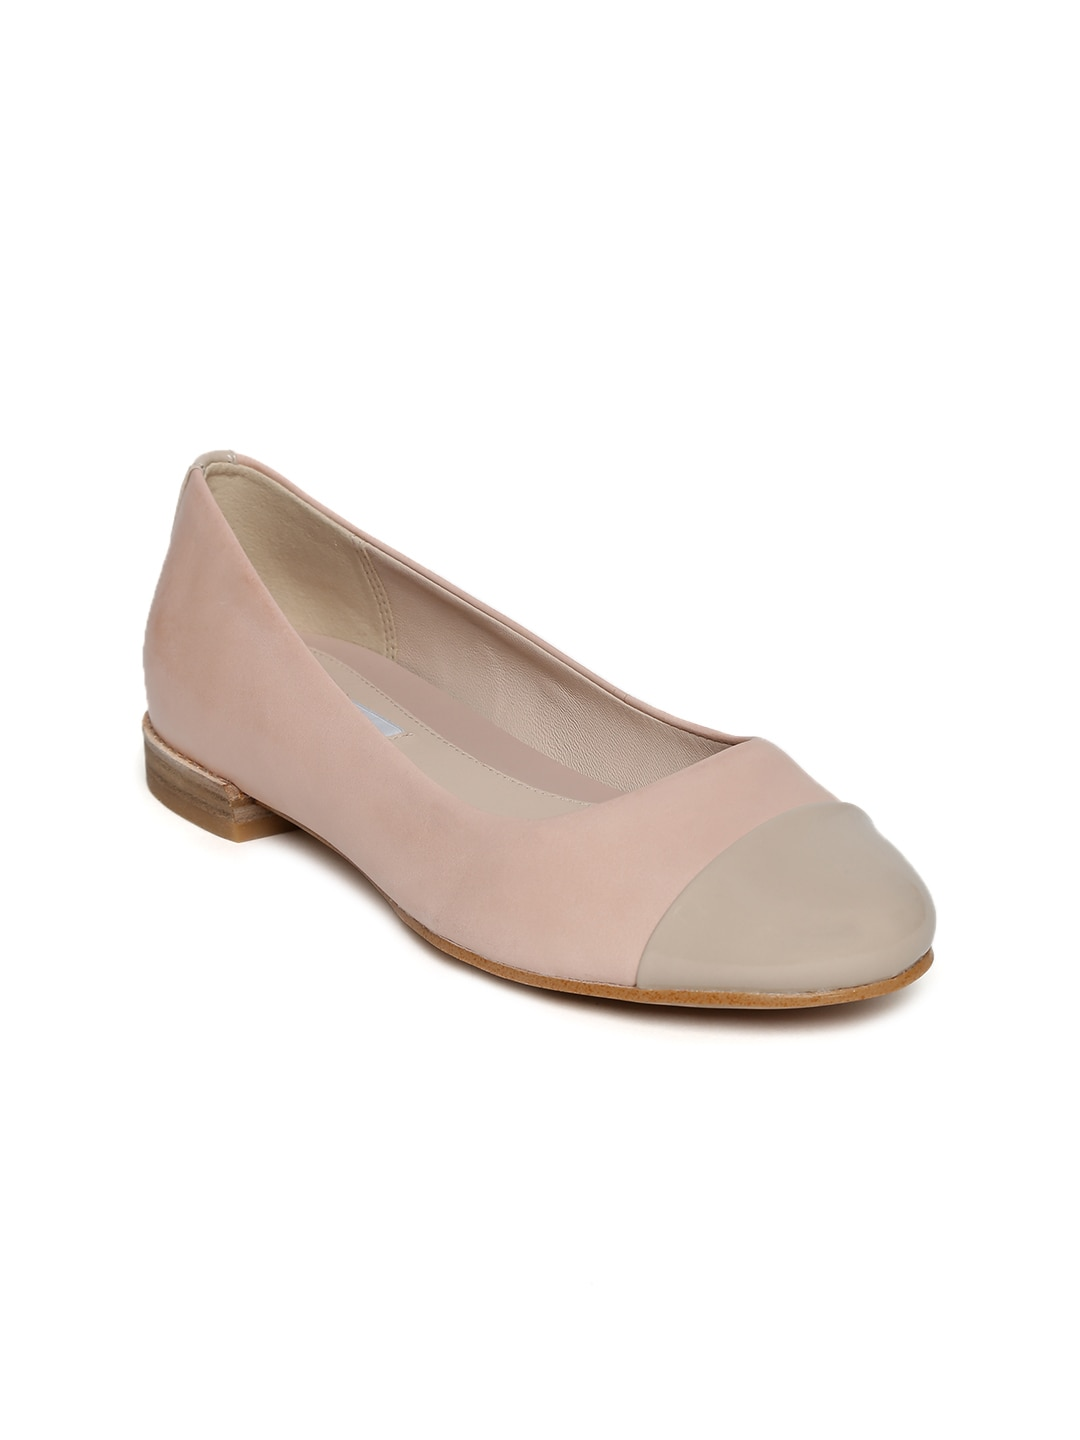 Clarks Women Dusty Pink Leather Ballerinas